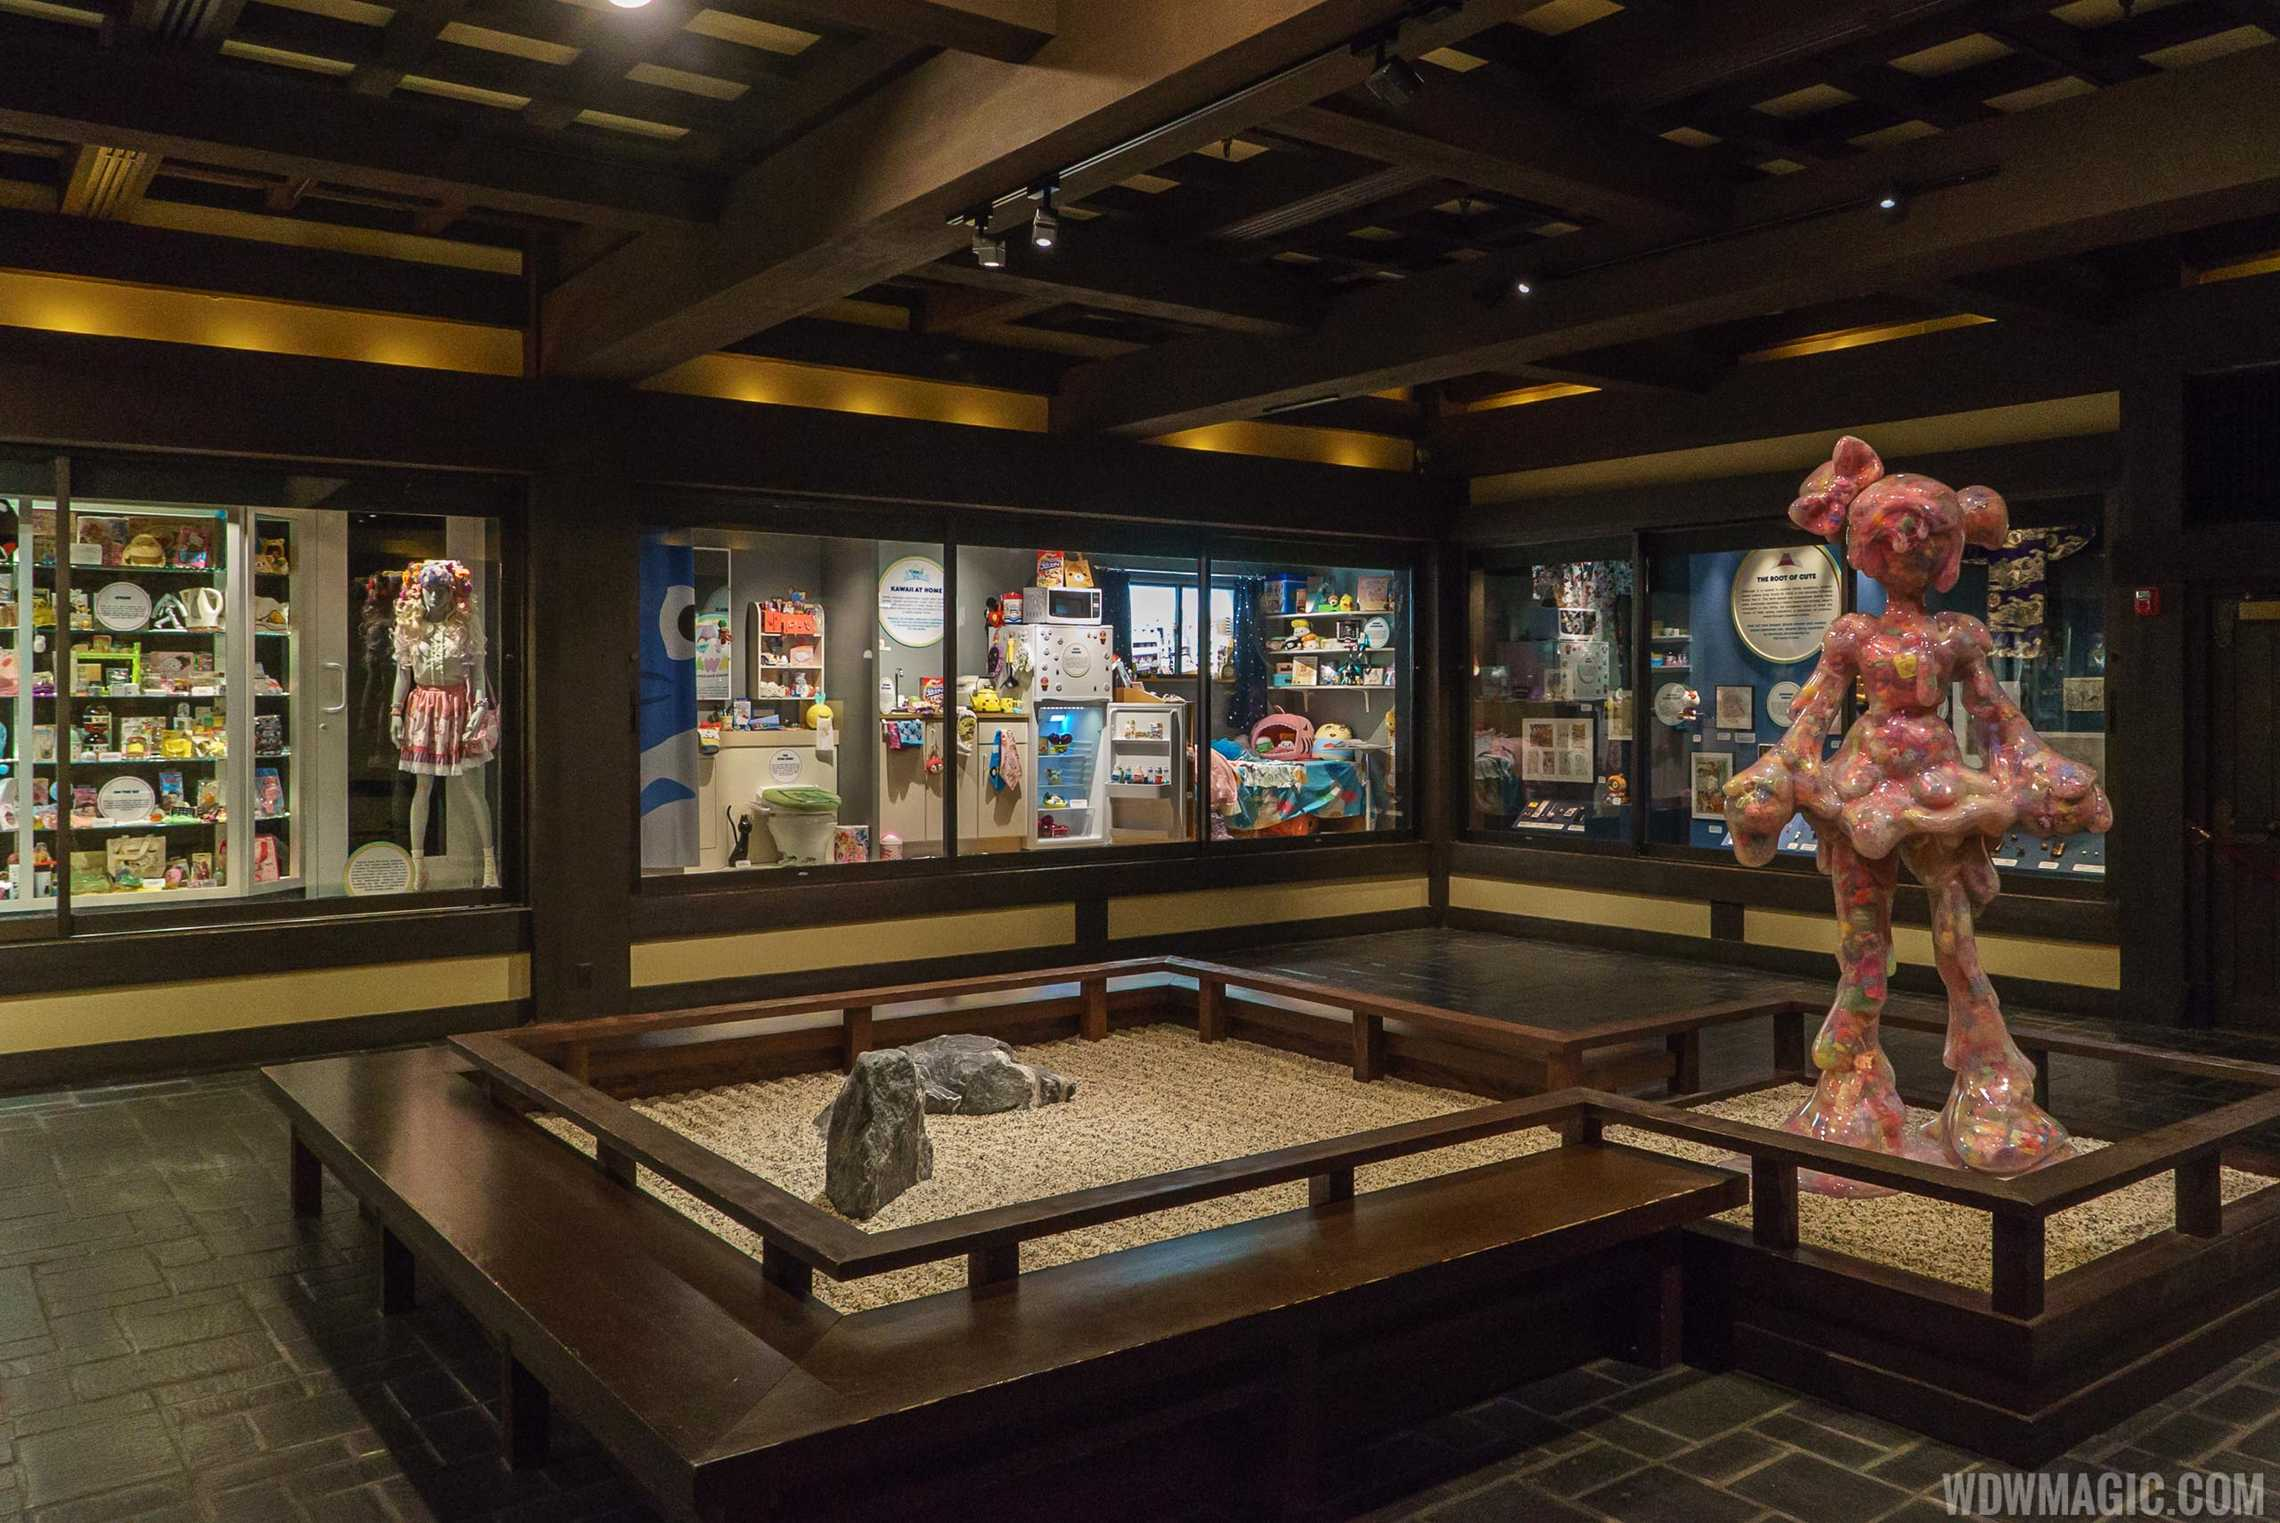 Exhibition Booth Japan : Photos epcot s japan pavilion gallery updated with new